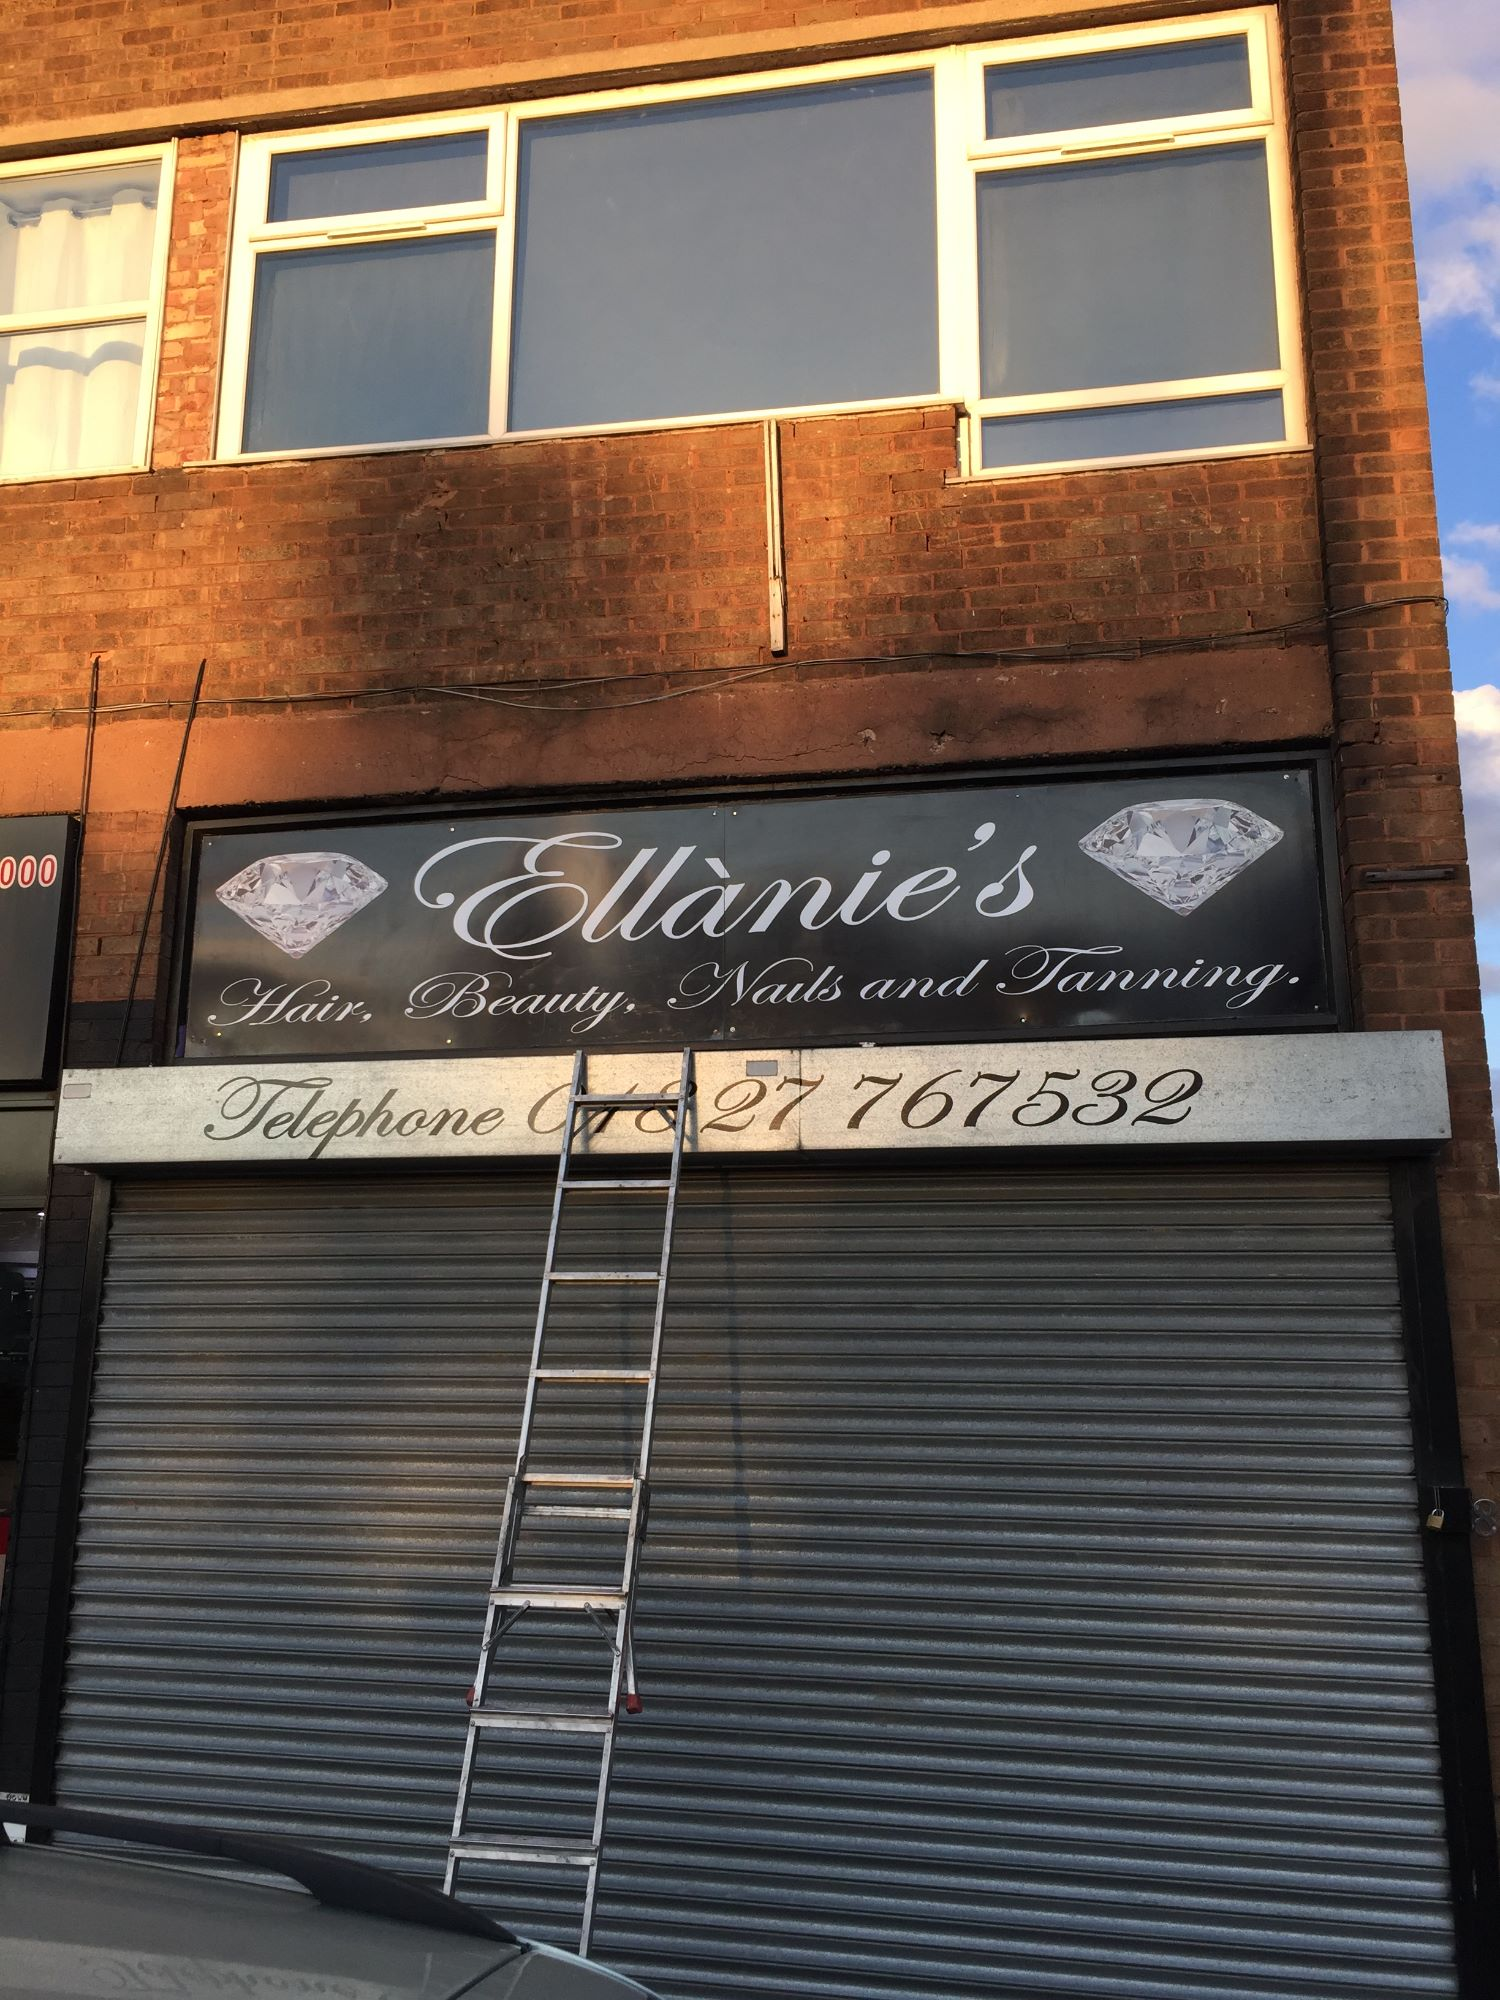 08.17 Commercial signage1